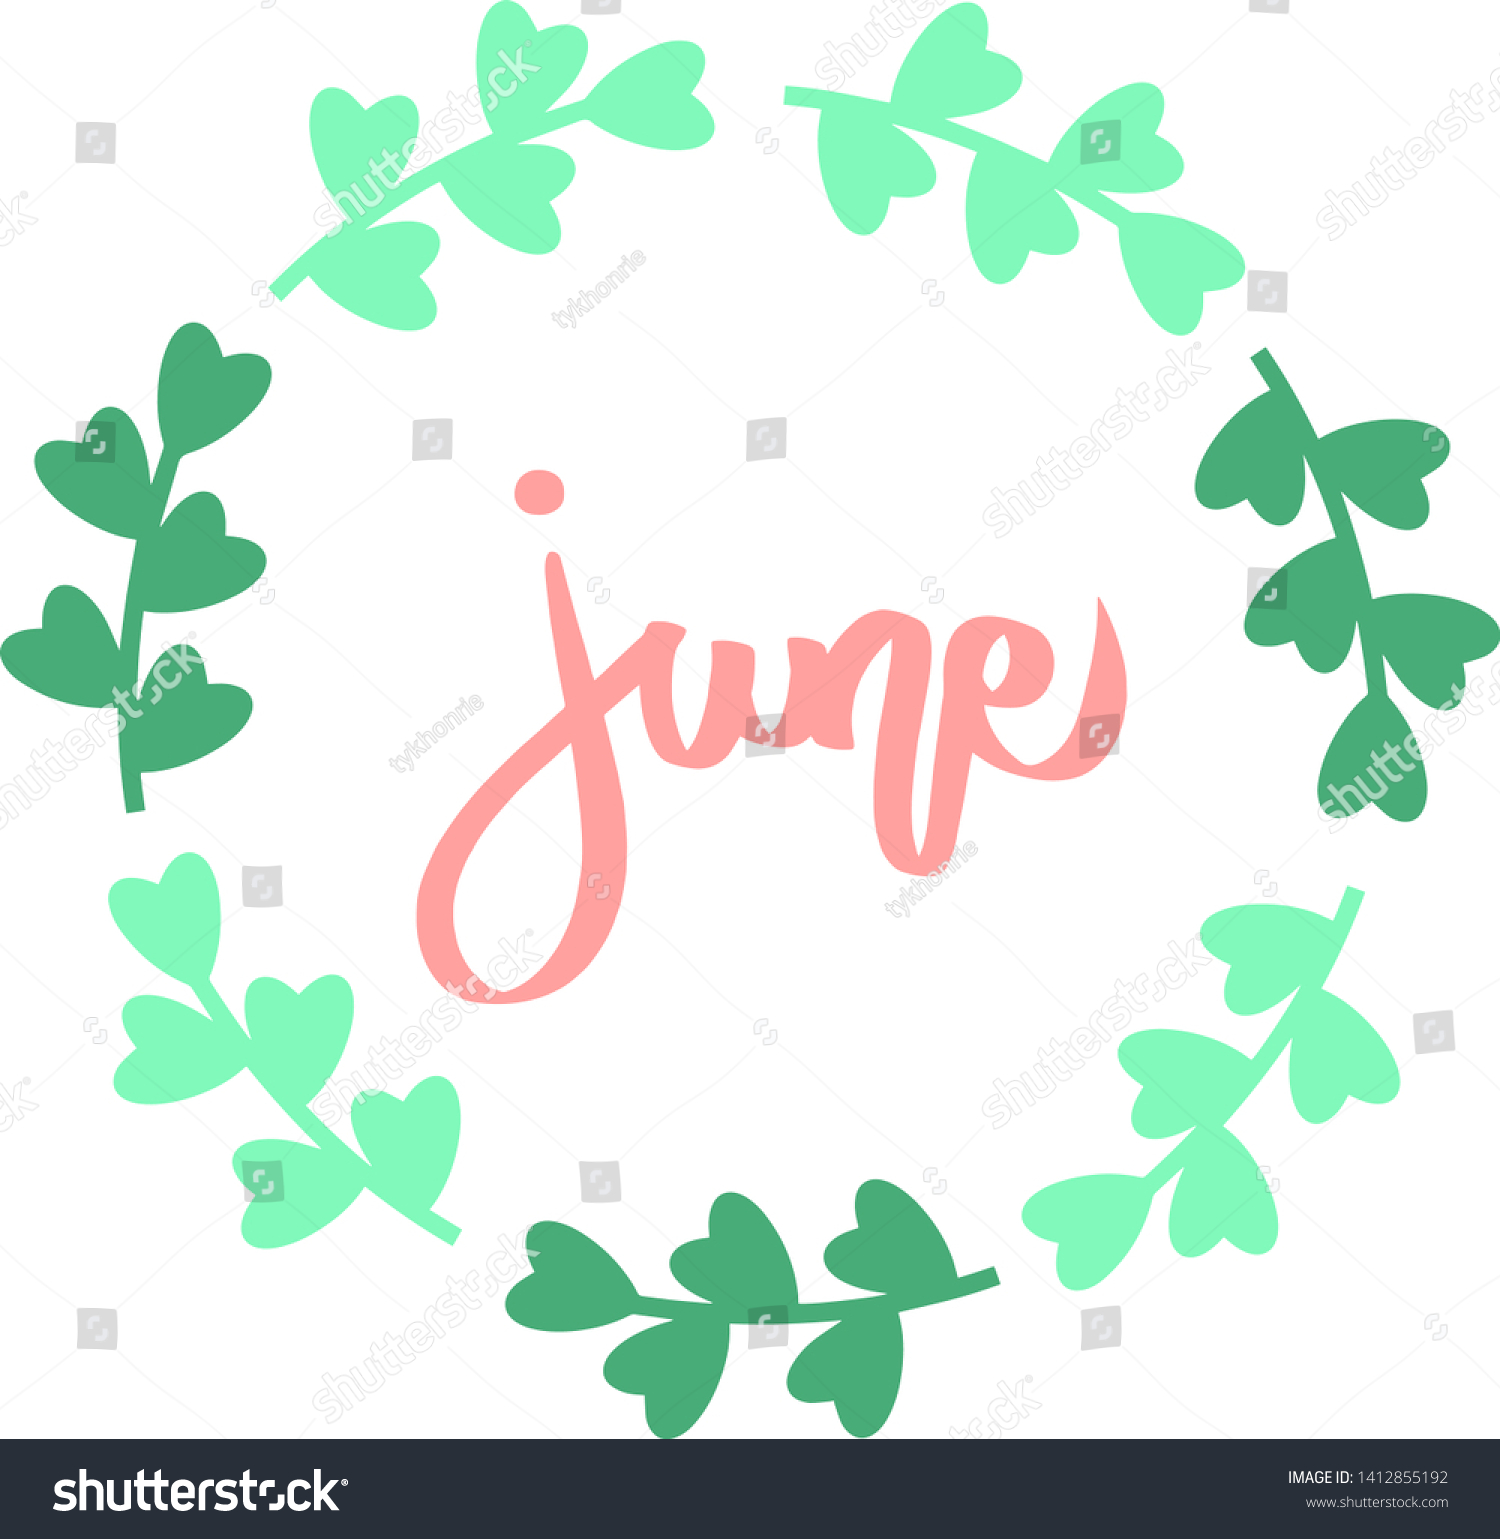 June lettering print text, green flora circle frame. Summer minimalistic illustration. Isolated calligraphy phrase on white. Lovely handwritten holiday slogan, irish patric leaves clovers border.